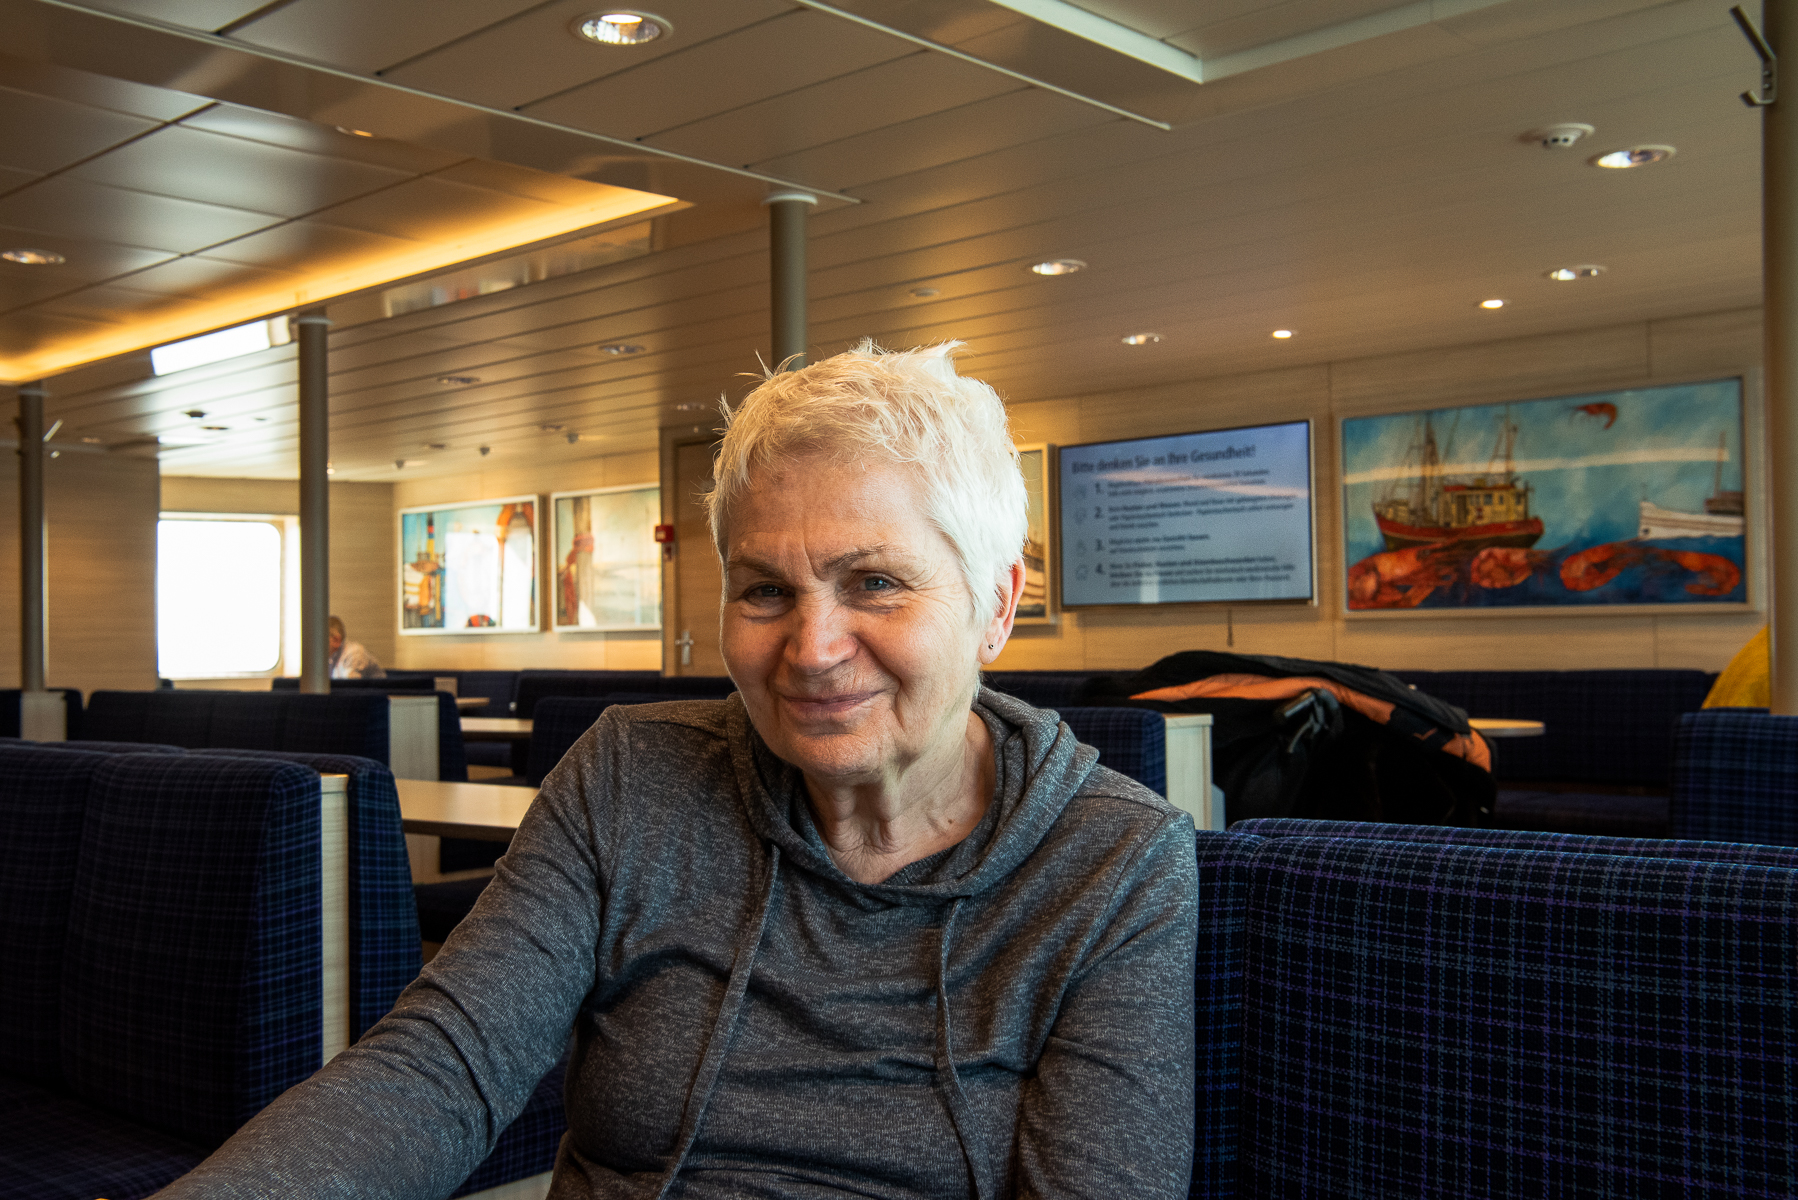 Mom onboard the ferry from Norddeich to Norderney. Another sign of the developing pandemic are the hygiene guidelines posted on the ferry's screen in the background. Norderney, Germany, March 5, 2020.